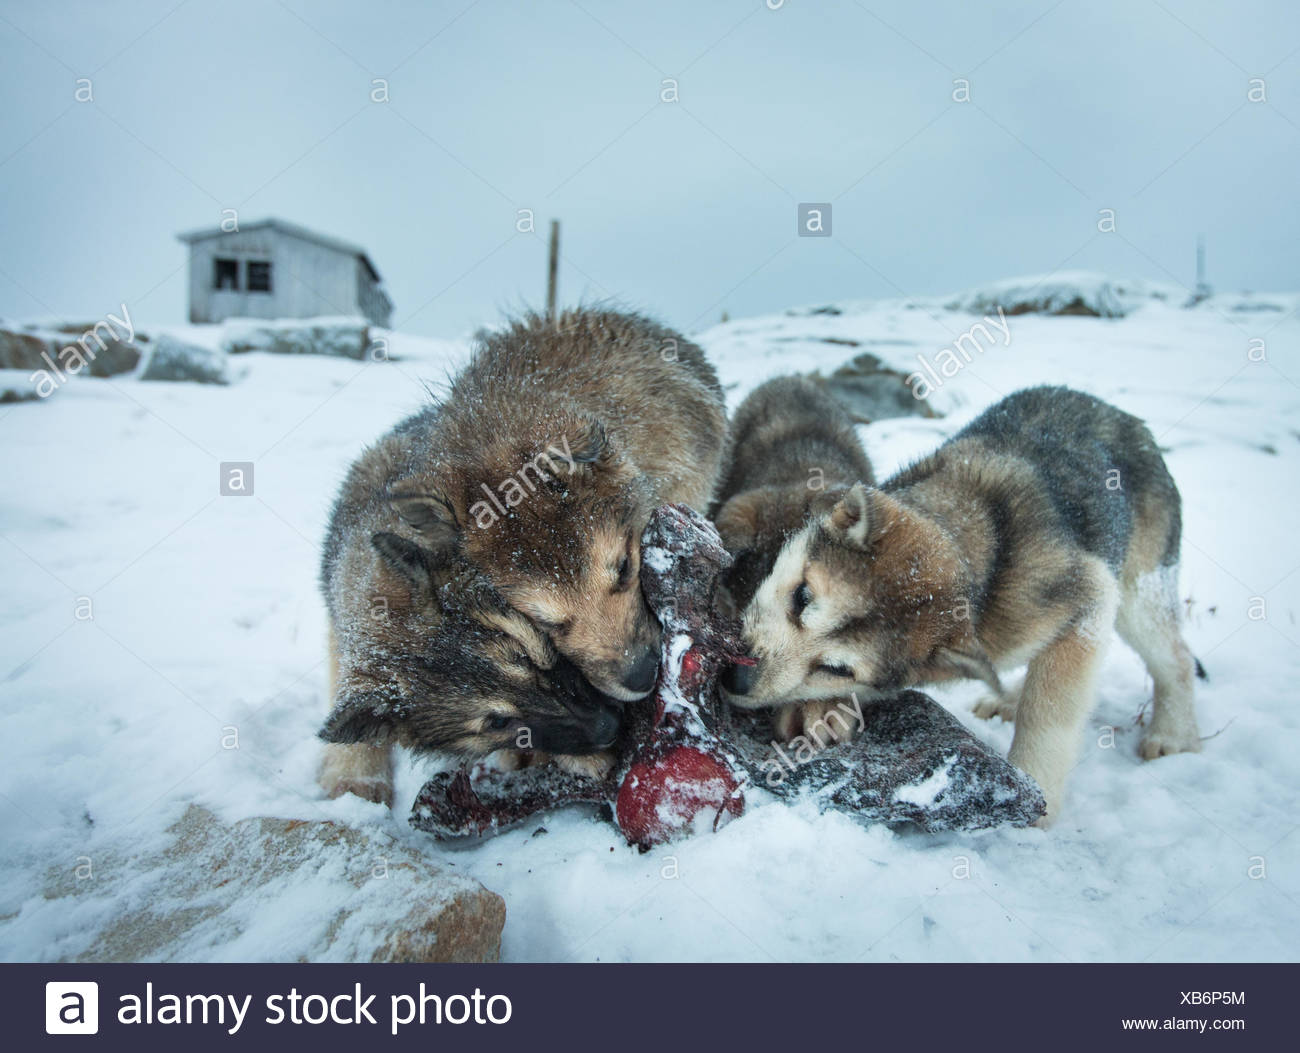 Sled dogs are fed killer whale meat in the small Inuit settlement of Isortoq in East Greenland. Stock Photo